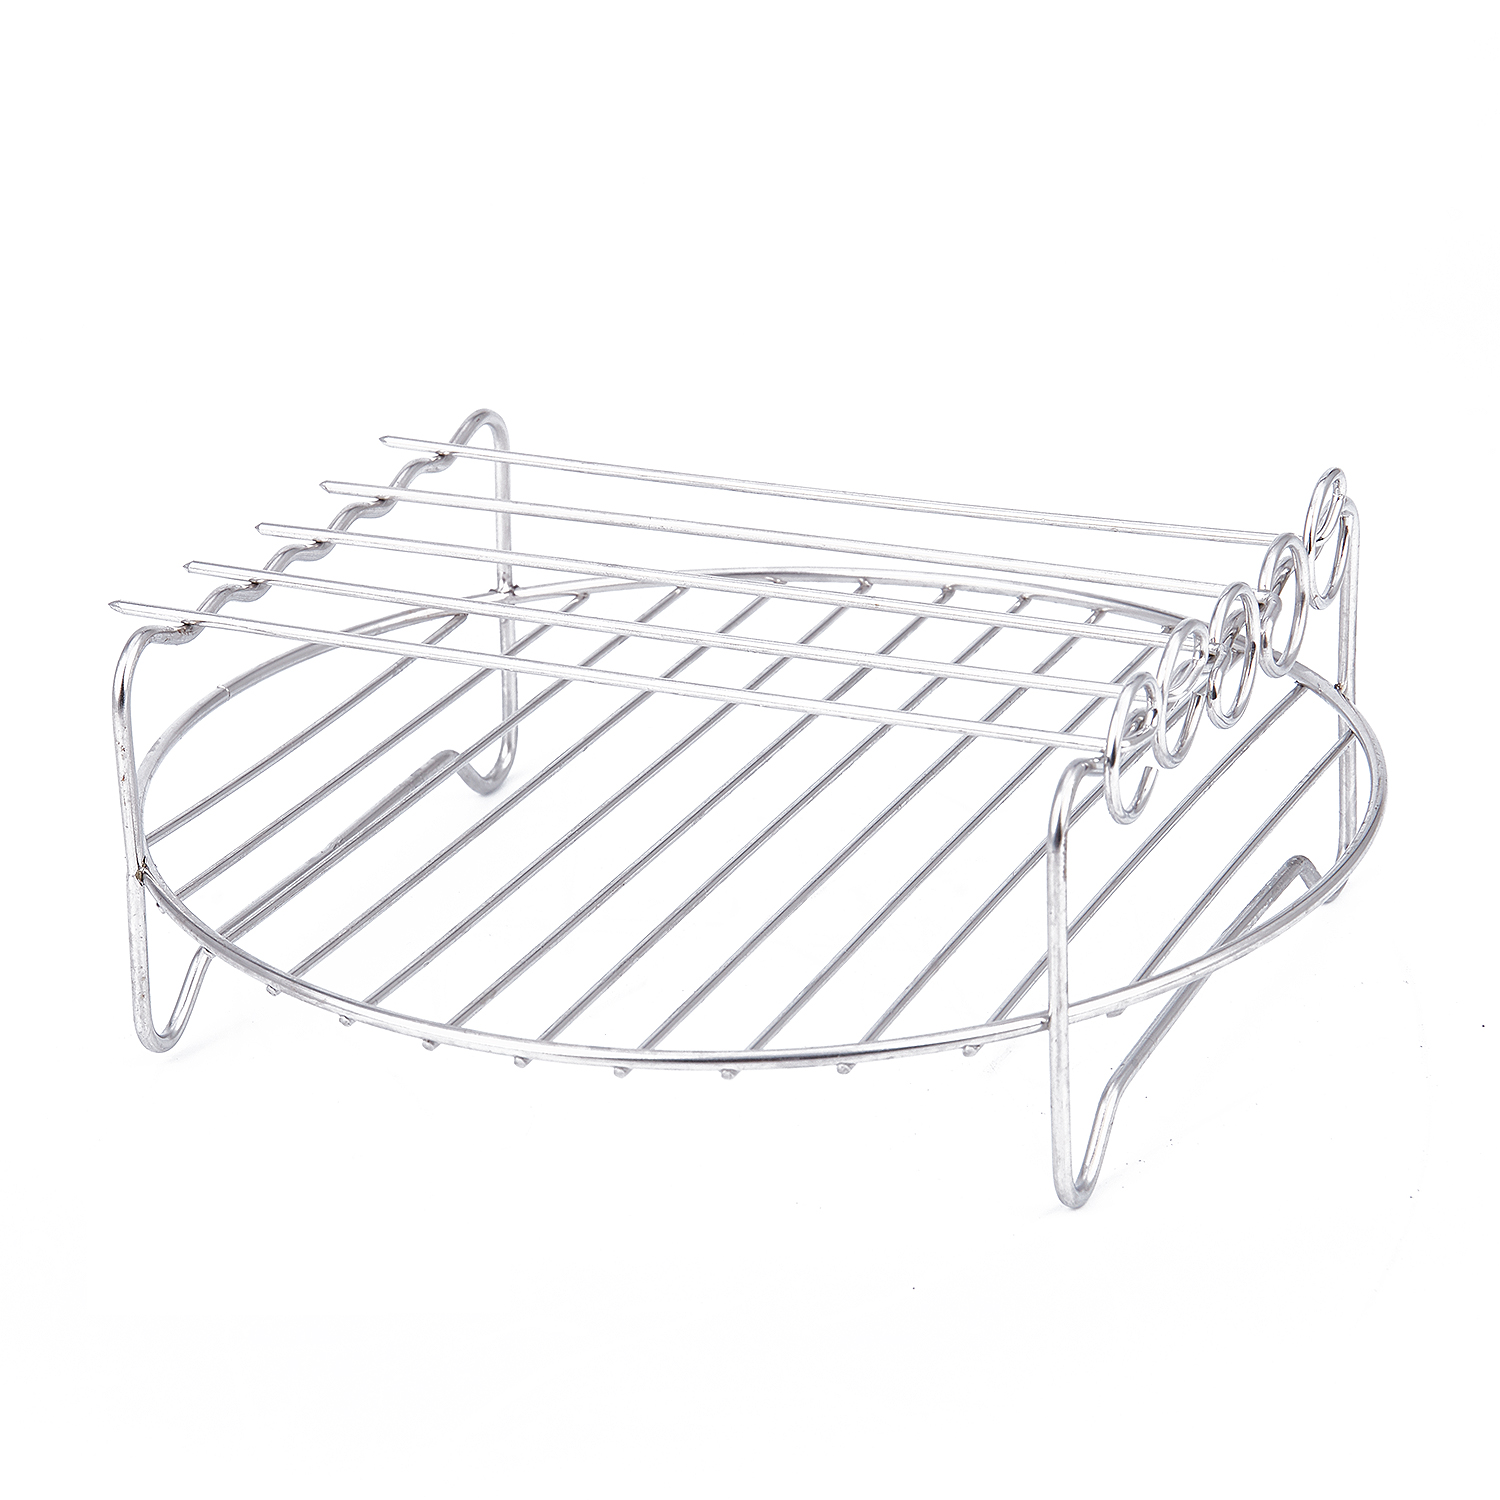 Airfryers Double Layer Rack Accessory With 5 Skewers For Dishwasher-safe And Easy To Clean Enjoy Your Healthy Meals! Please